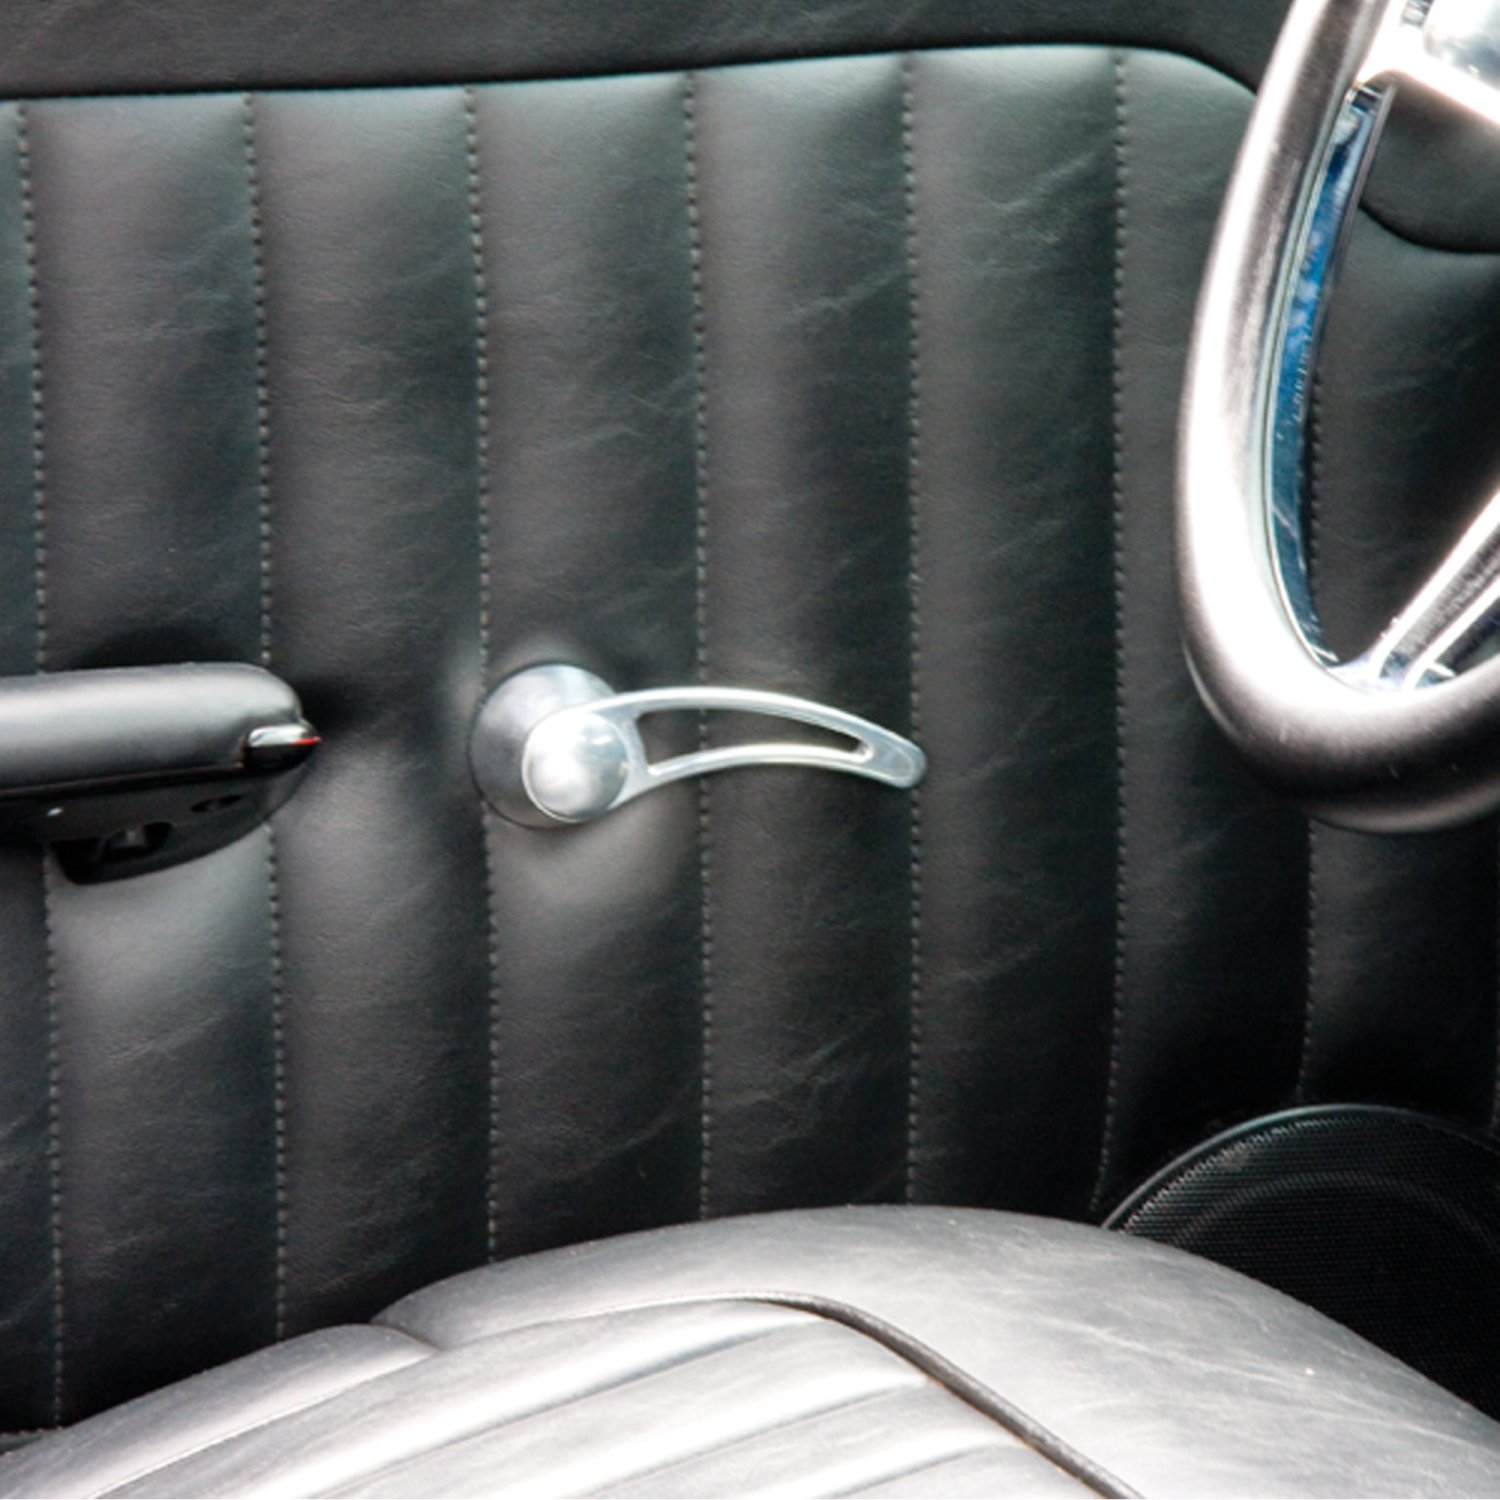 custom car door handles. Dress Up That Door Panel AutoLc Billet Handles Take Interior Customization To A New Level Featuring 5 Distinct And Stylish Designs Are Guaranteed Custom Car